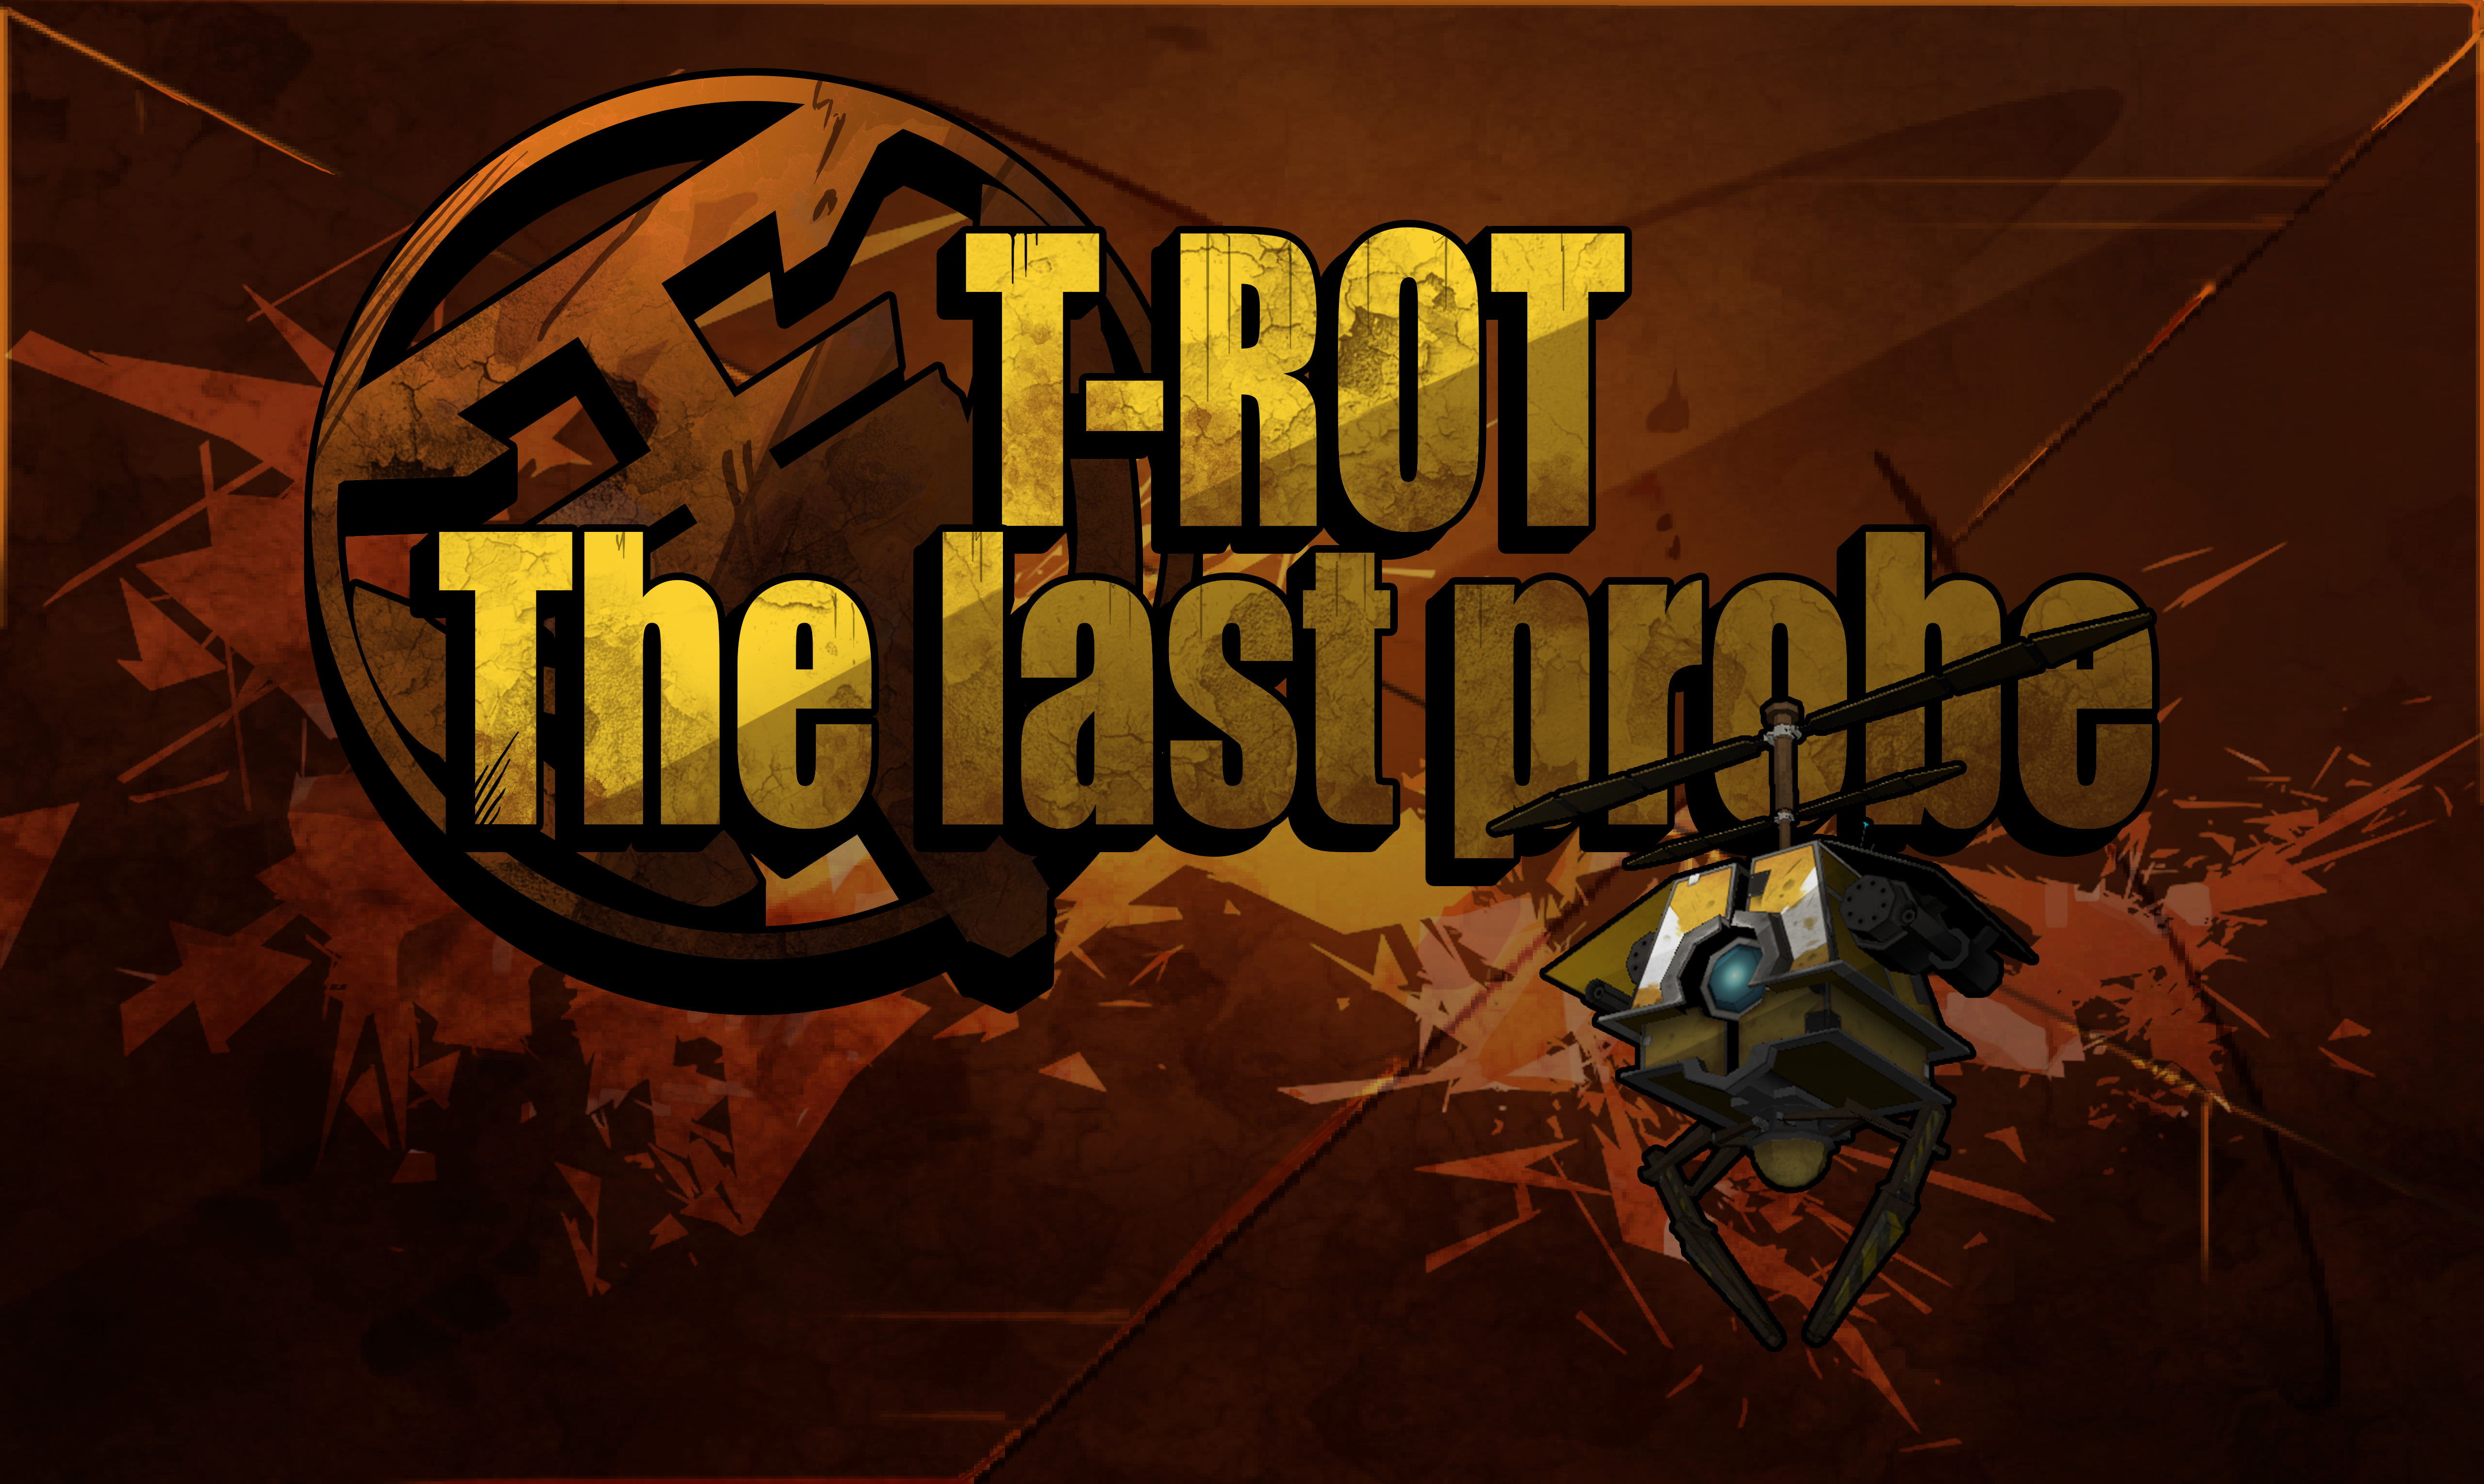 T-ROT THE LAST PROBE